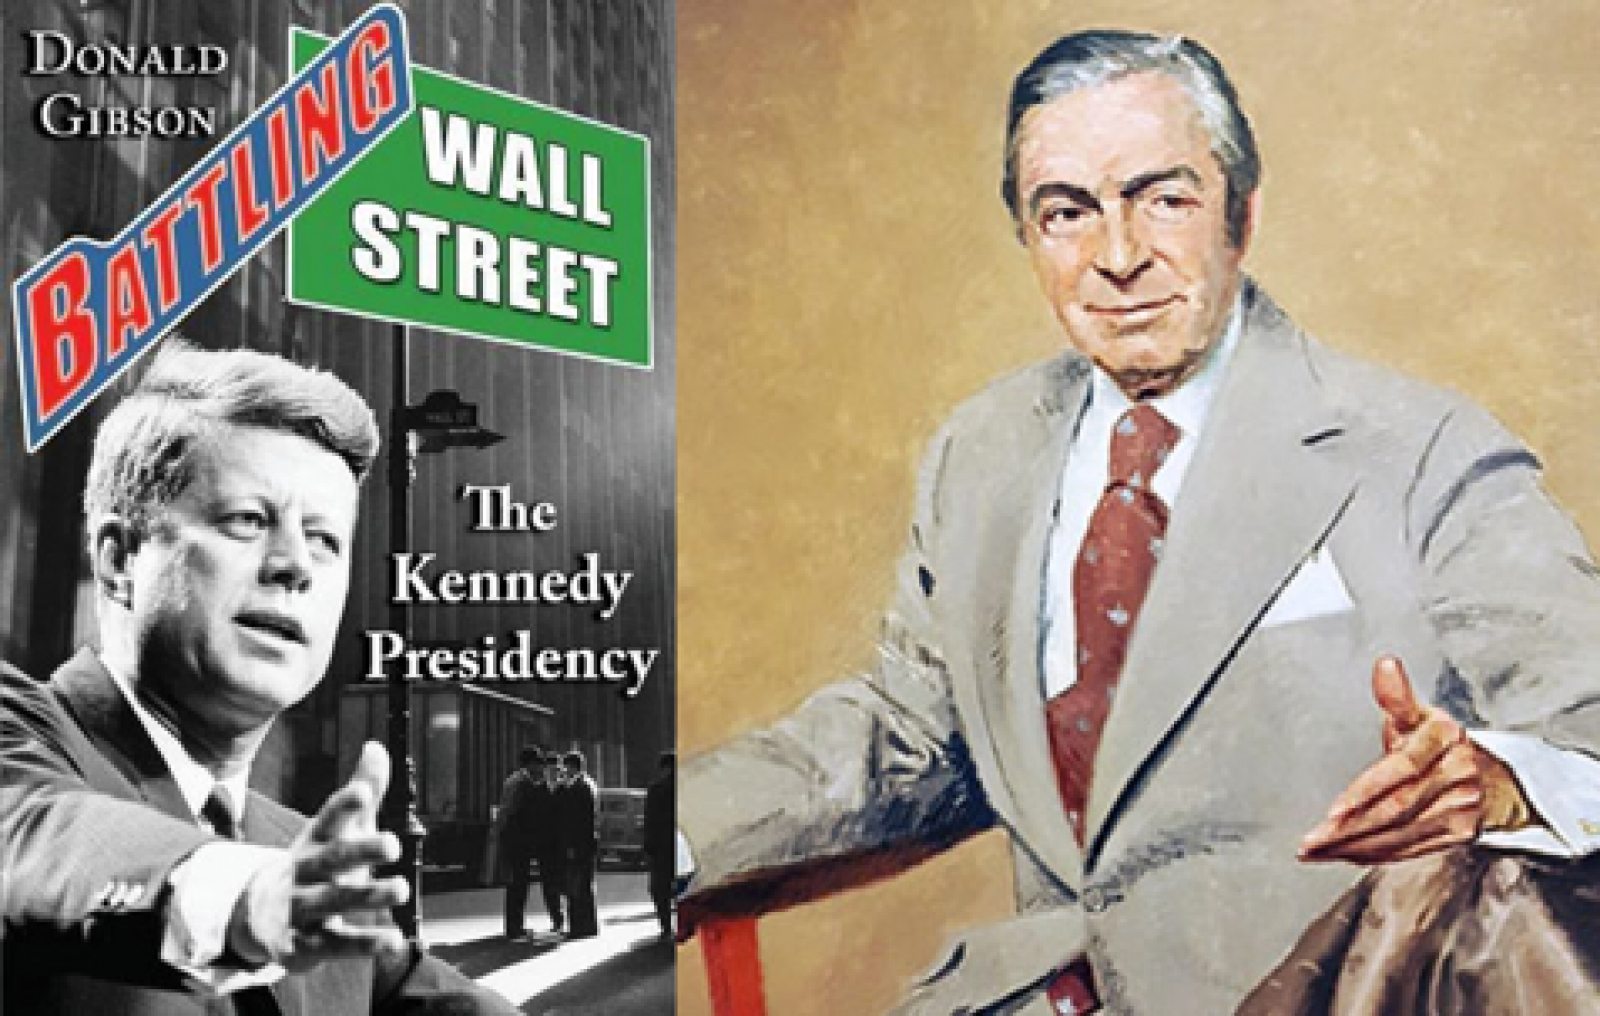 James Saxon and John Kennedy vs. Wall Street